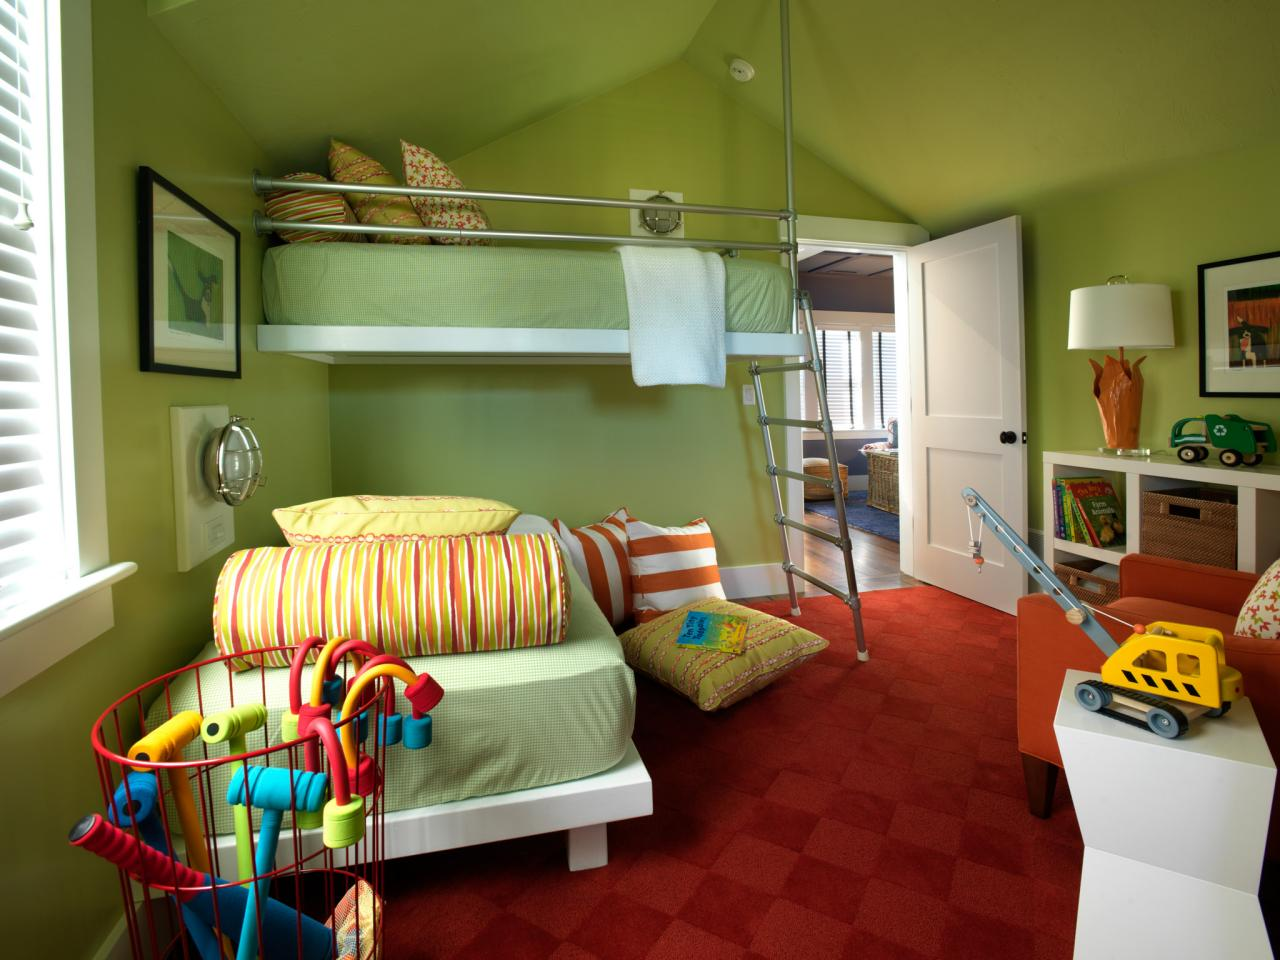 Living room color schemes green - Boys Bedroom Color Schemes